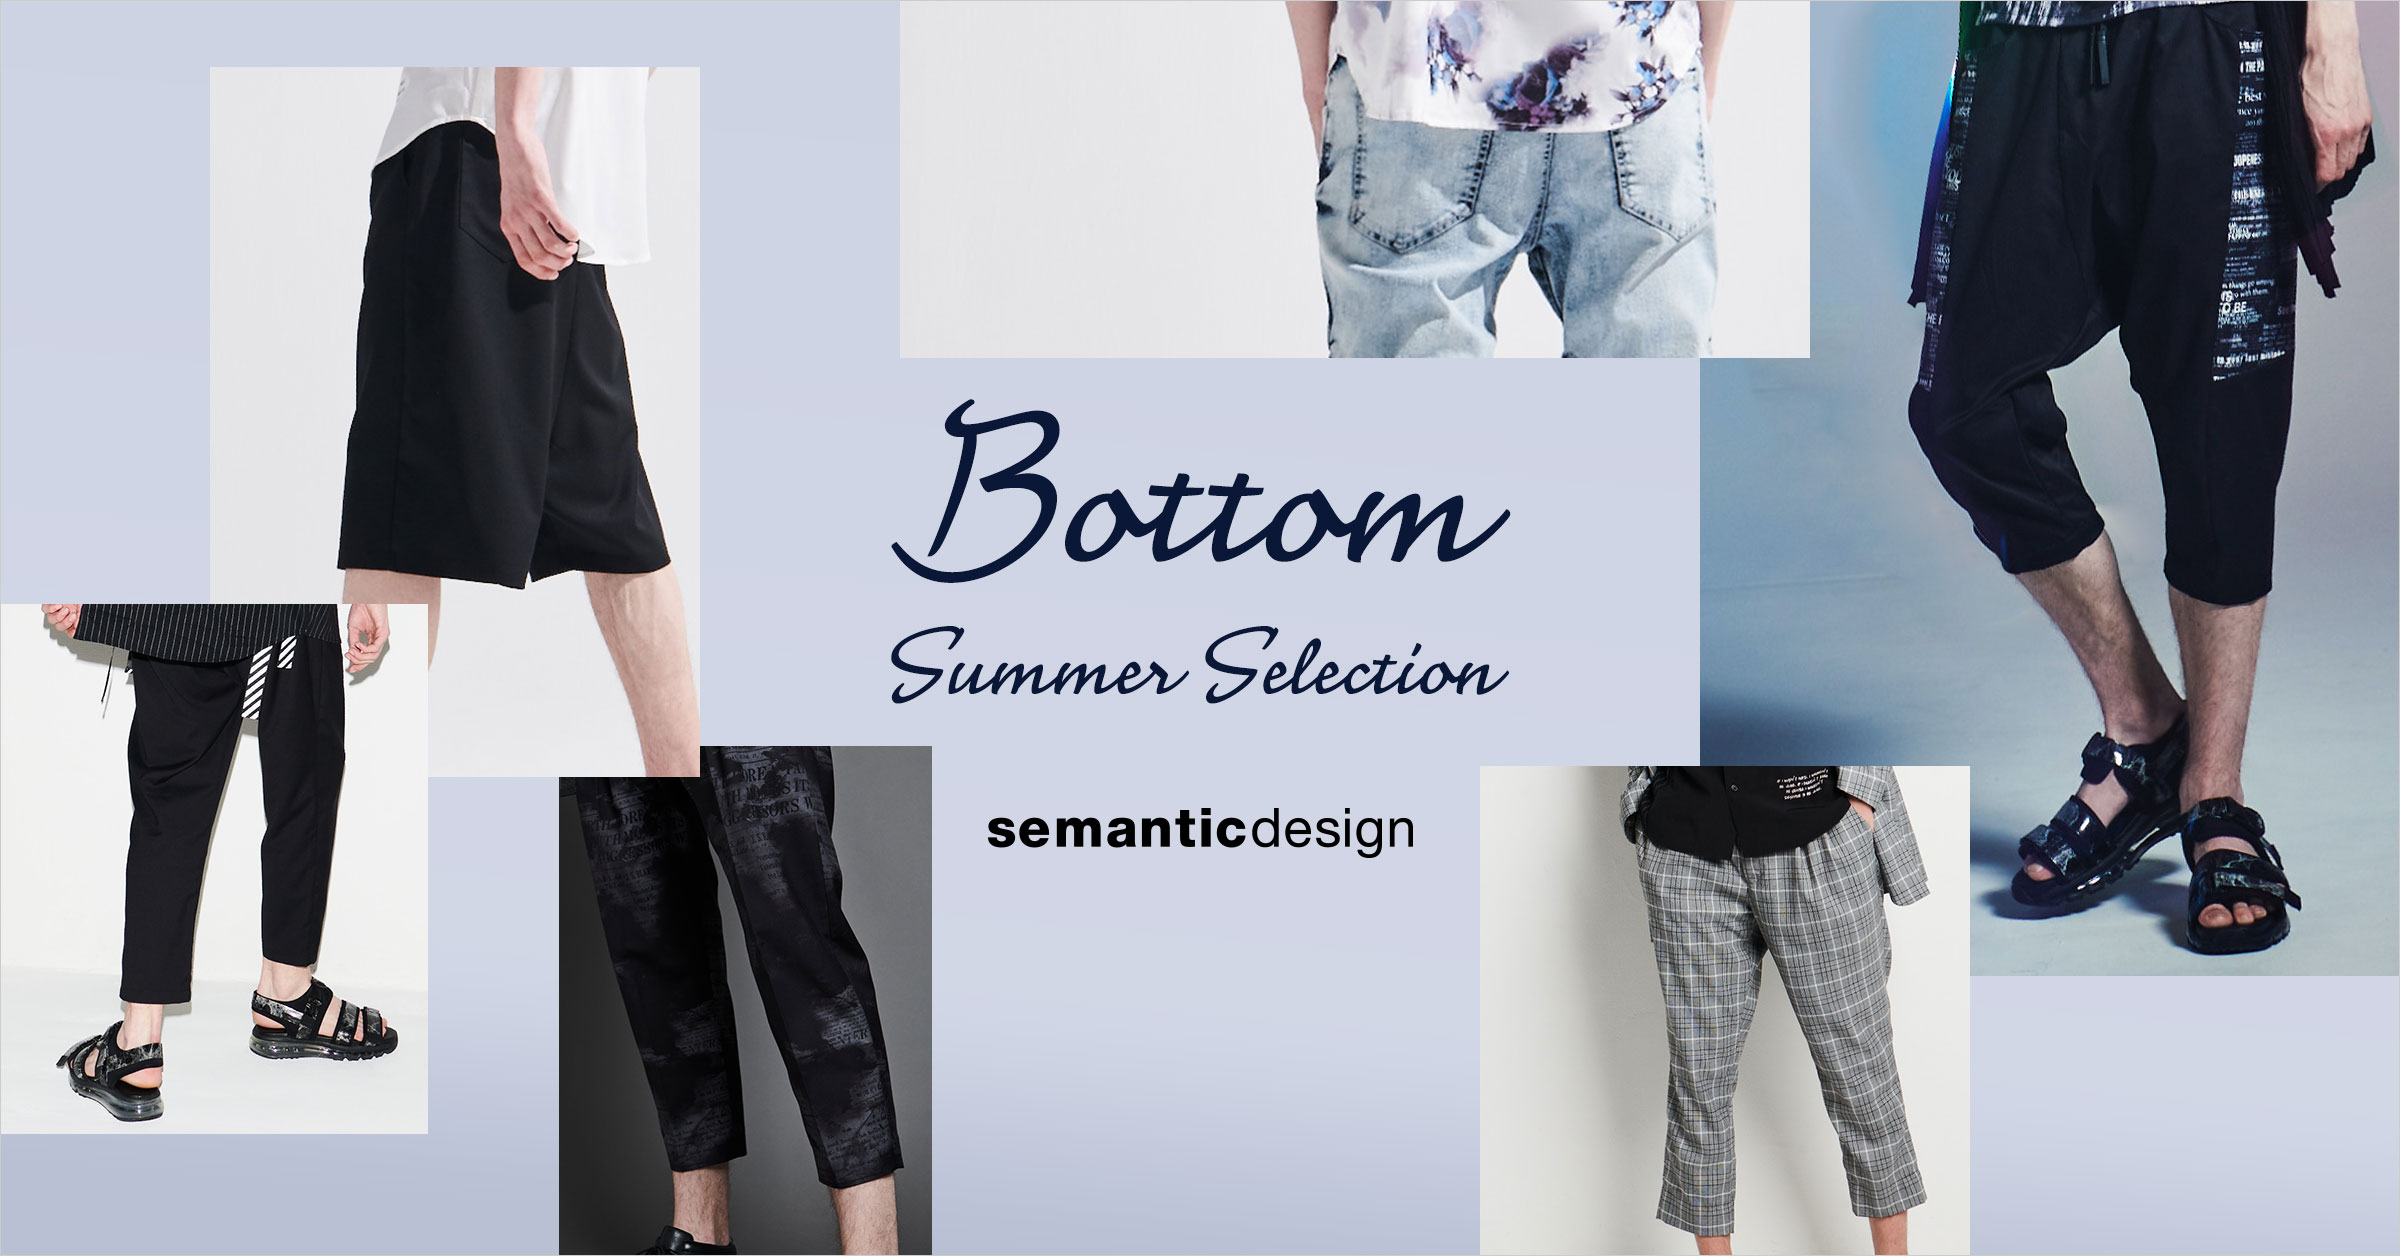 semantic design Bottom Summer Selection